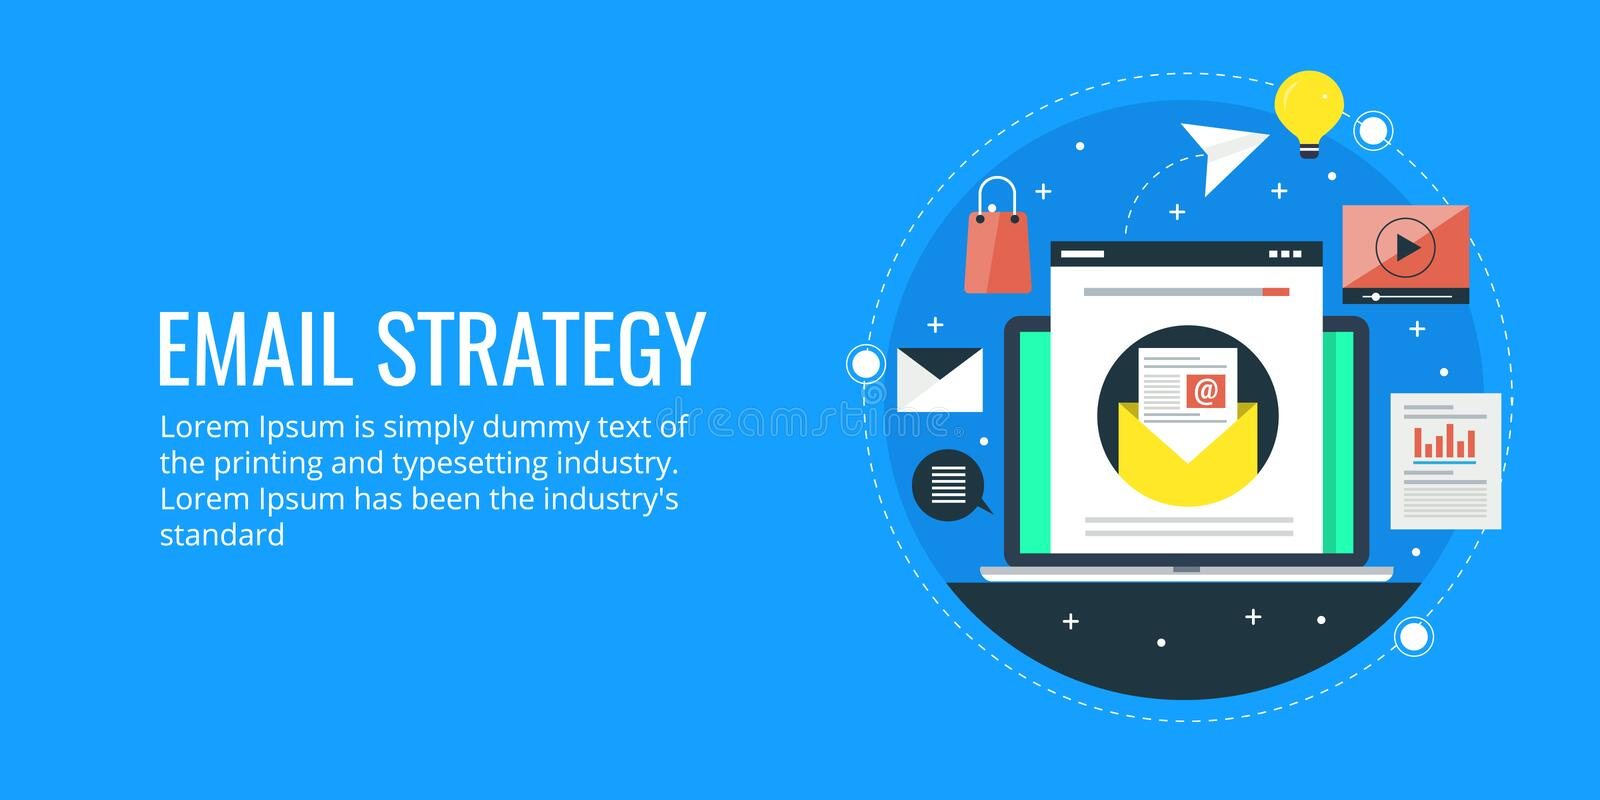 Email advertising strategy - concept of modern digital marketing. Flat design email banner. stock illustration